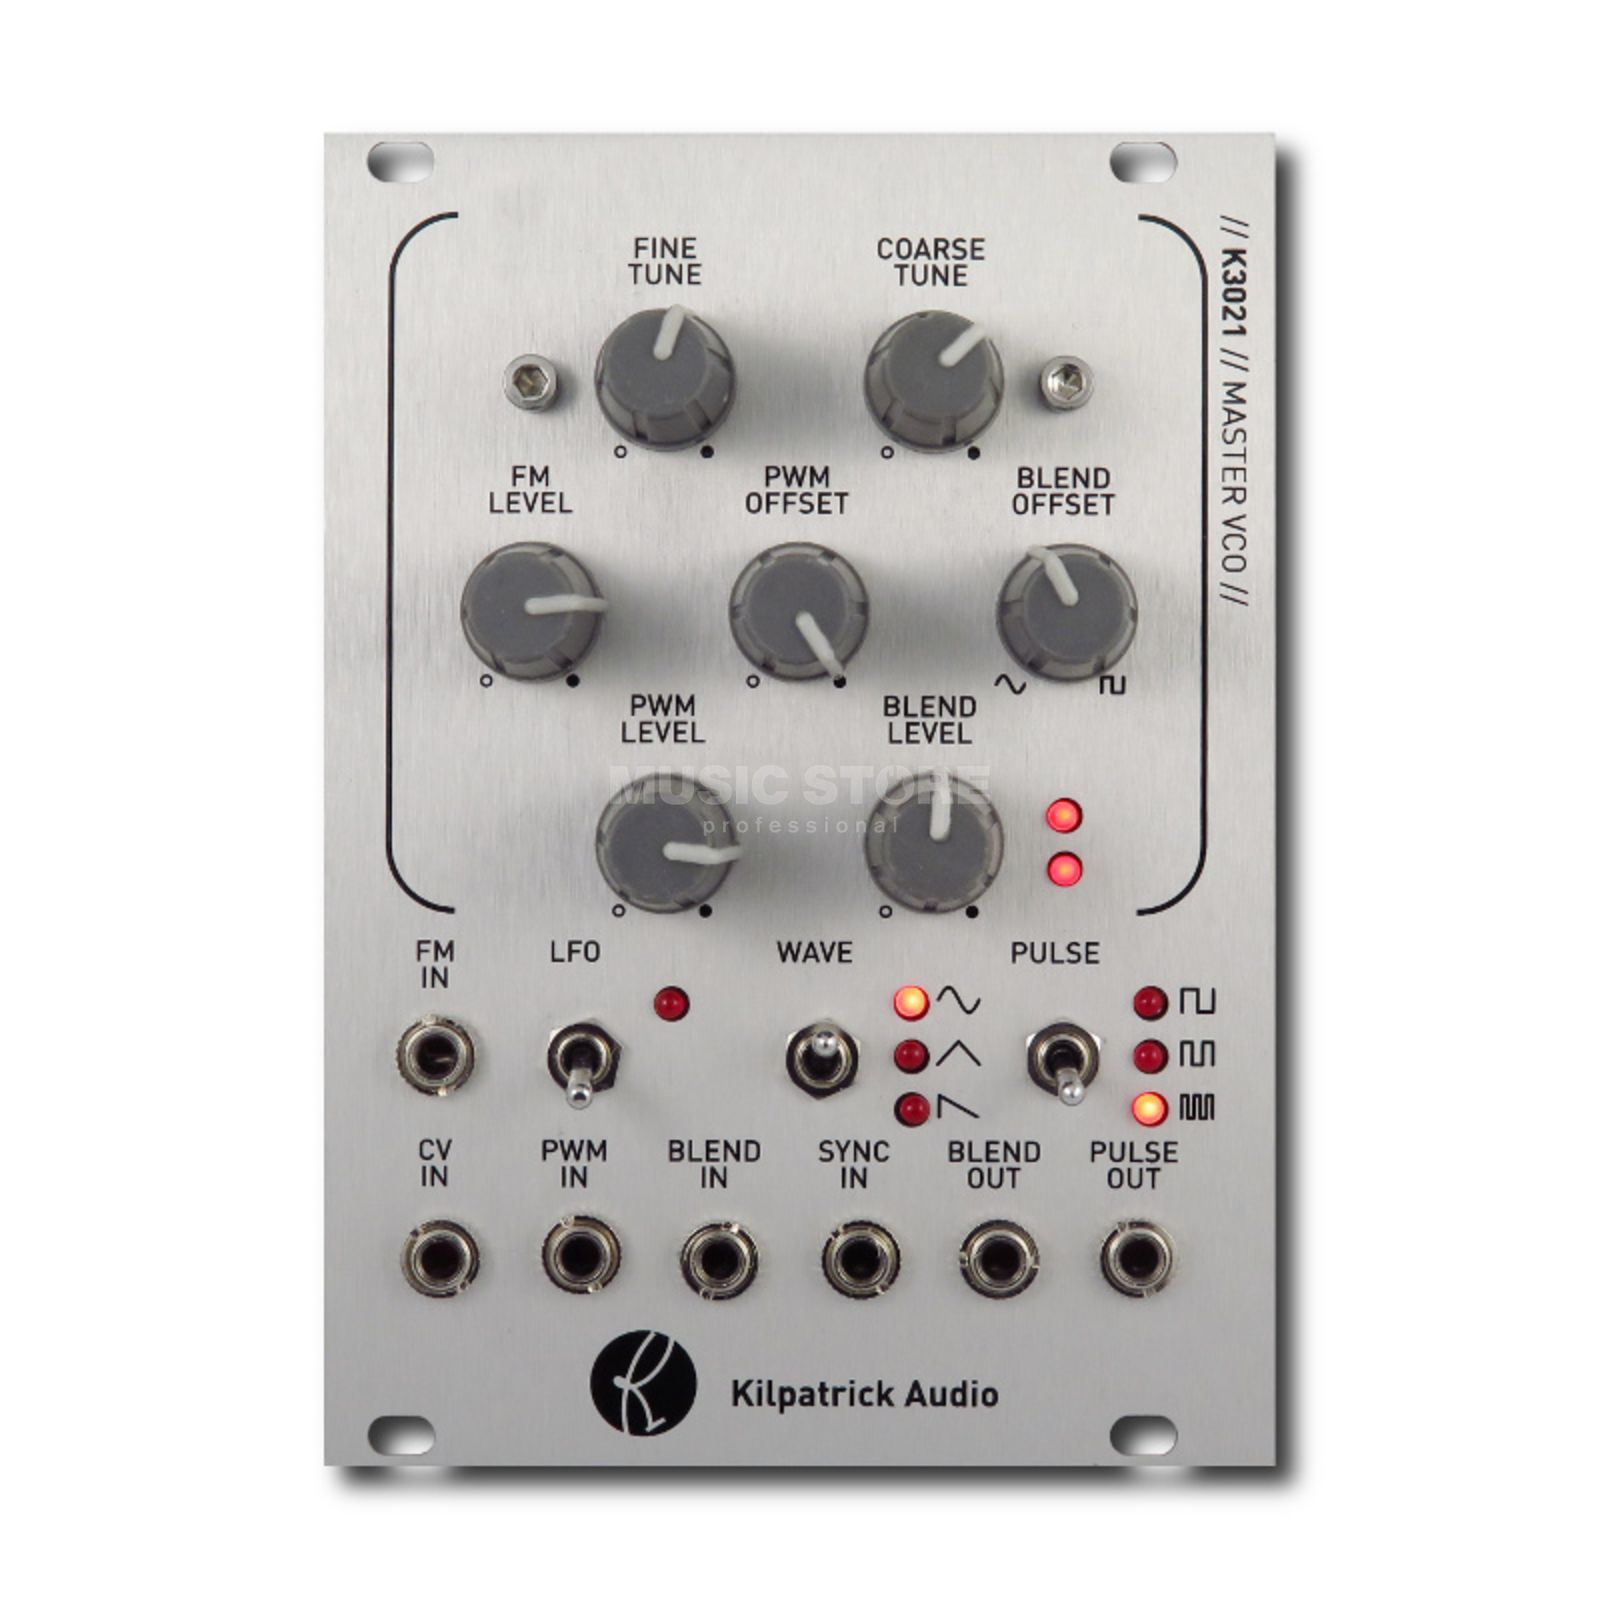 Kilpatrick Audio K3021 MASTER VCO - BLACK WEEK SPECIAL Product Image